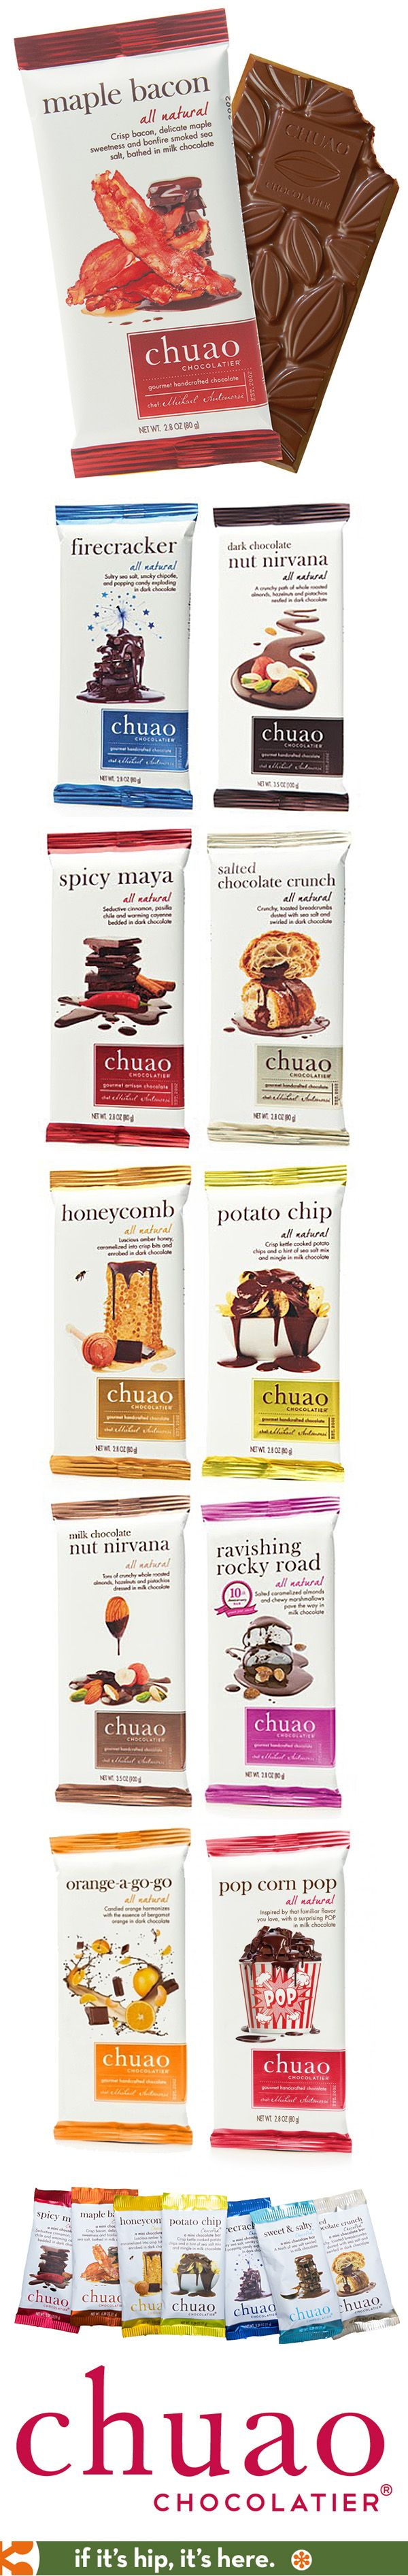 Chuao Chocolatier completely redid their branding since their initial launch in 2007.  This new packaging is much nicer.